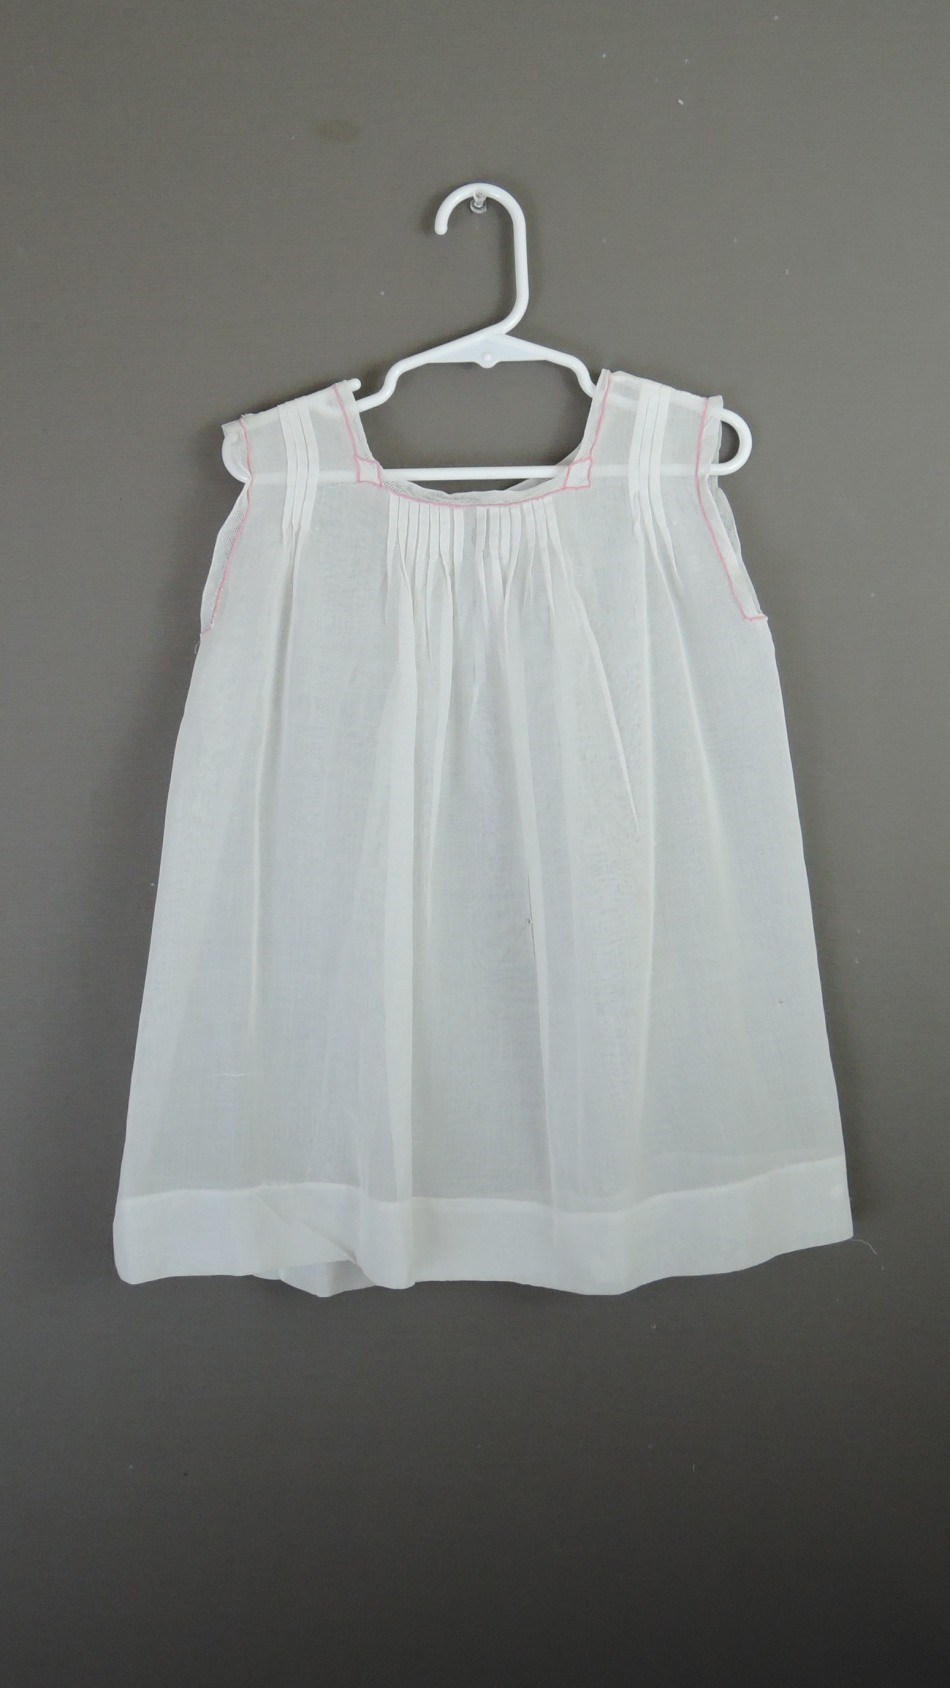 Vintage Baby Toddler Dress White with Pink Trim, 1930s 24 inch chest, some issues